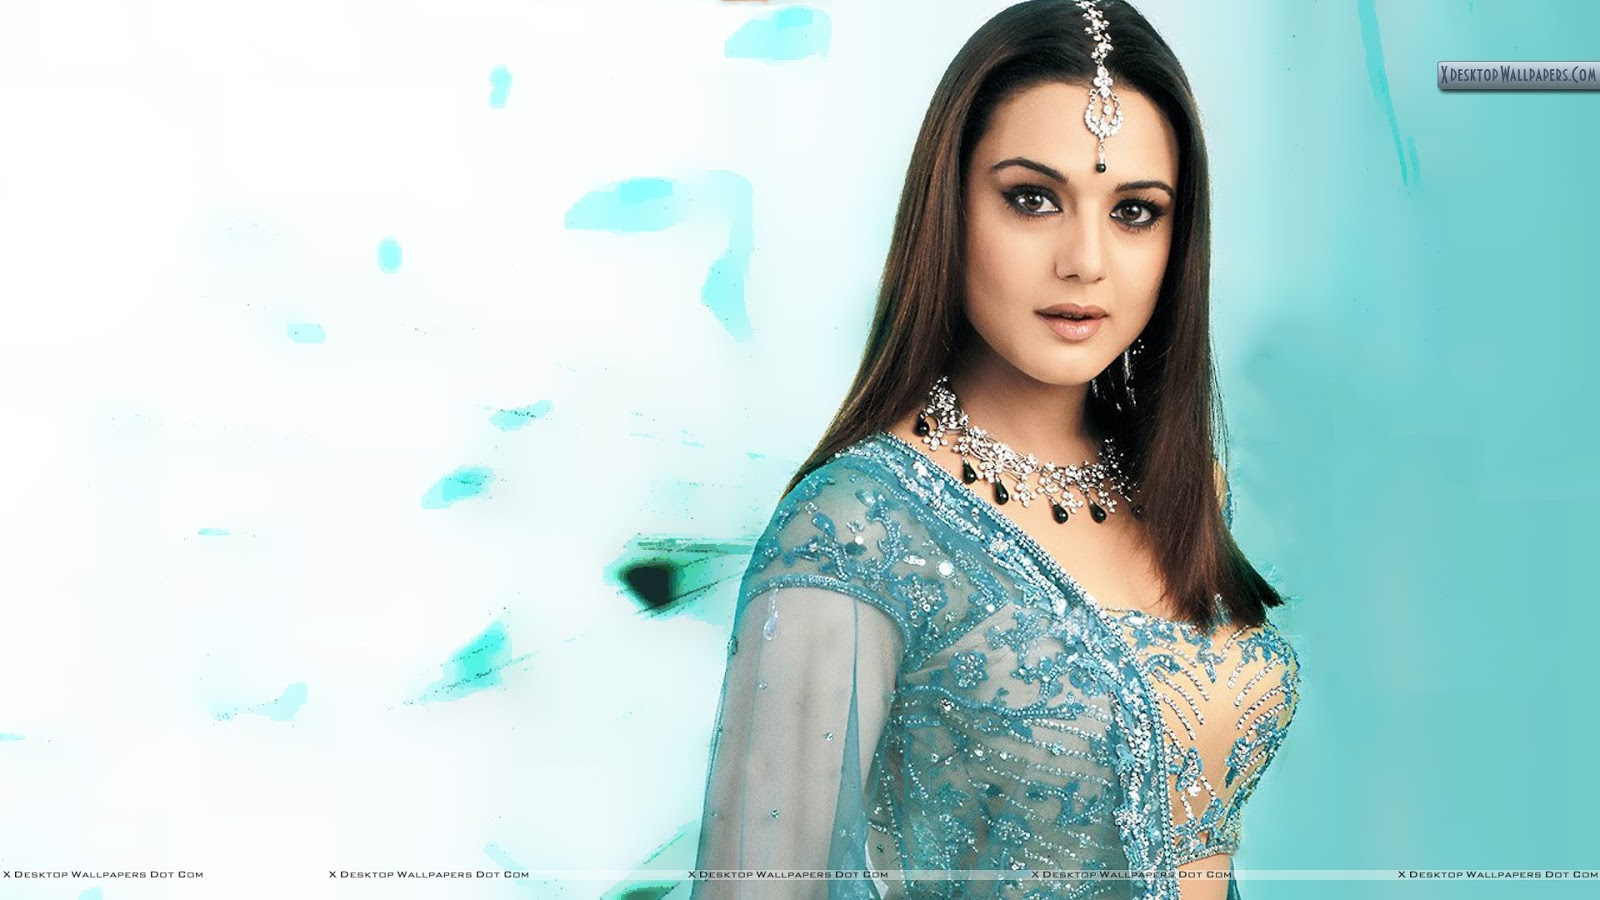 Preity Zinta Hd Wallpapers 2016 - All New Wallpaper Images -5406